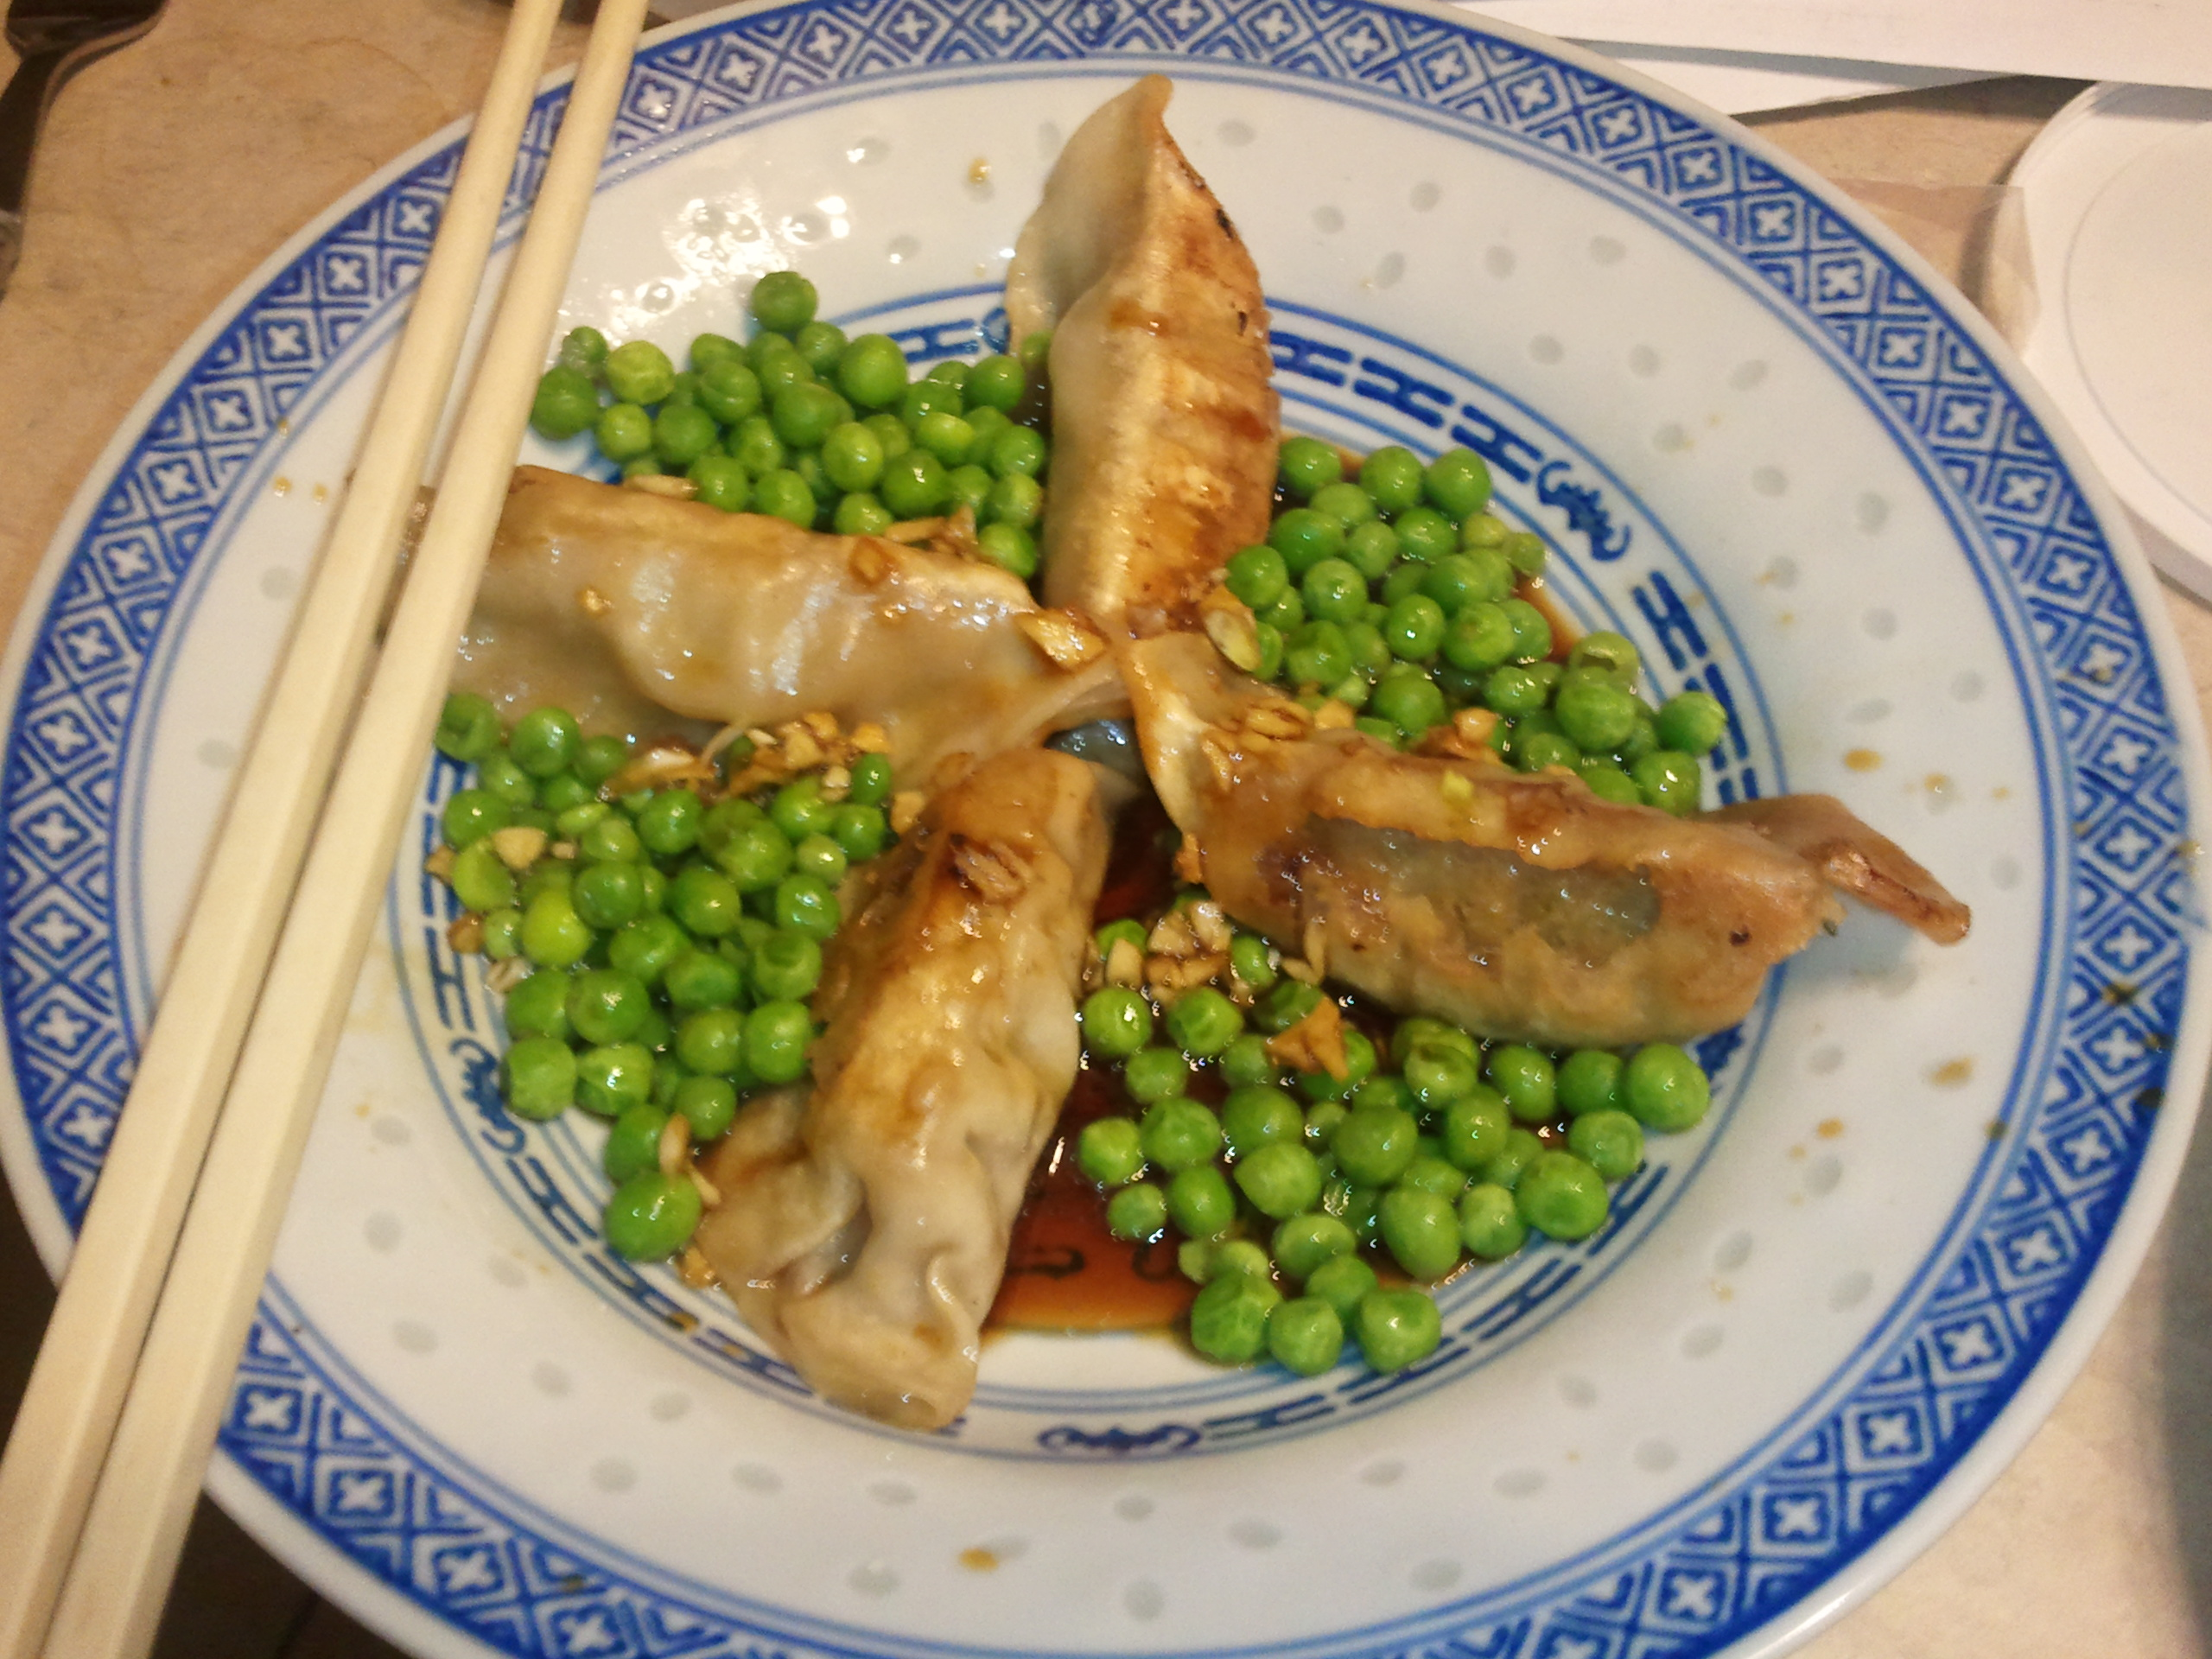 Chinese dumplings on a bed of peas